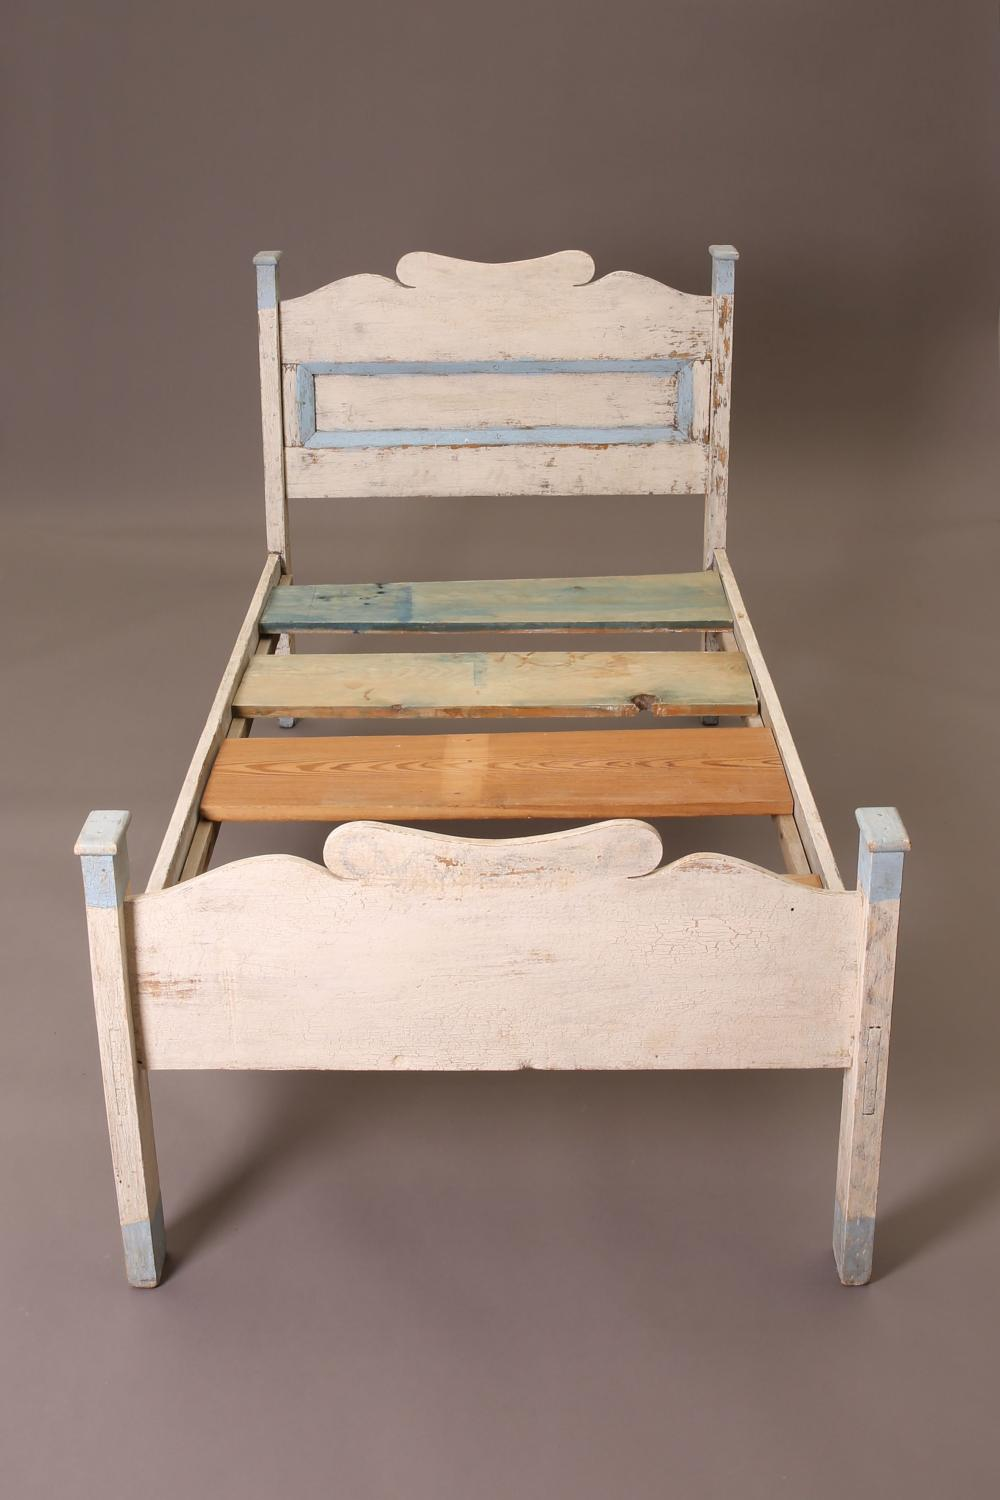 New Mexico, Painted Wooden Bed, ca. 1900